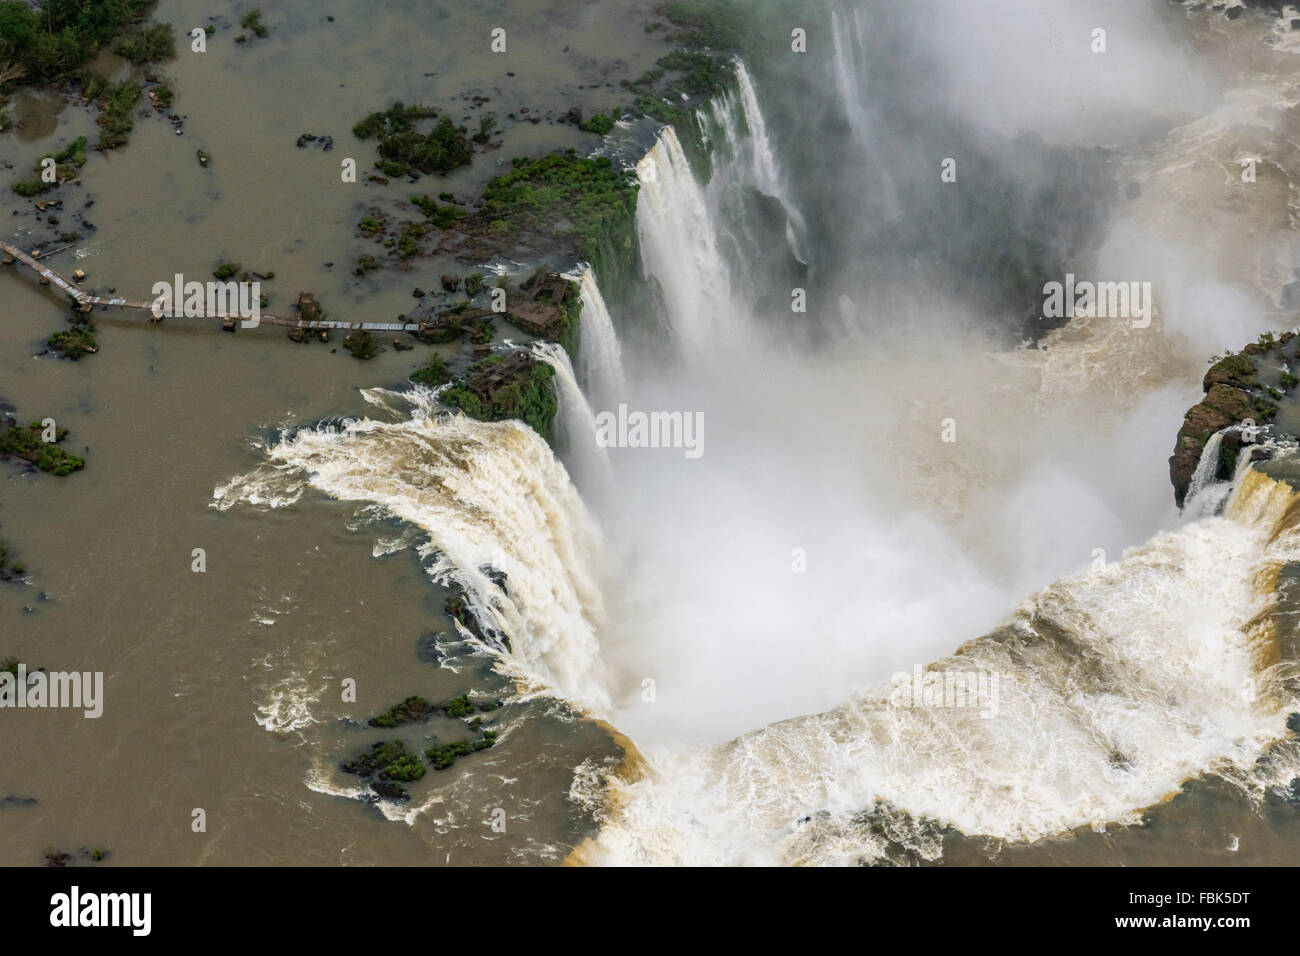 Directly over the Devil's Throat with the wreck of the walkway, Argentinian side, Foz do Iguacu, Brazil Argentina - Stock Image